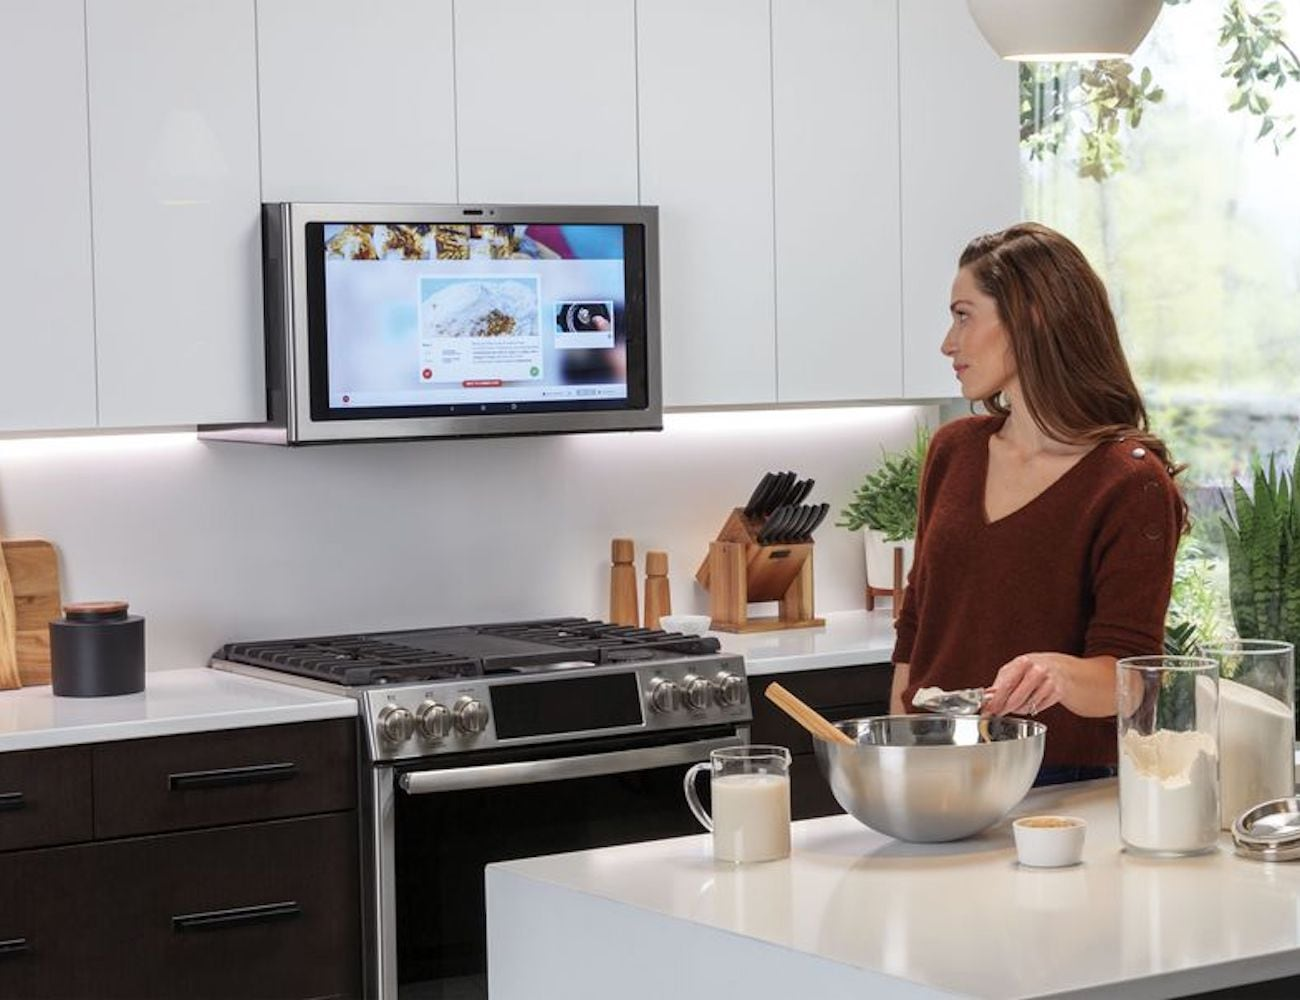 GE Kitchen Hub 27-inch Smart Display